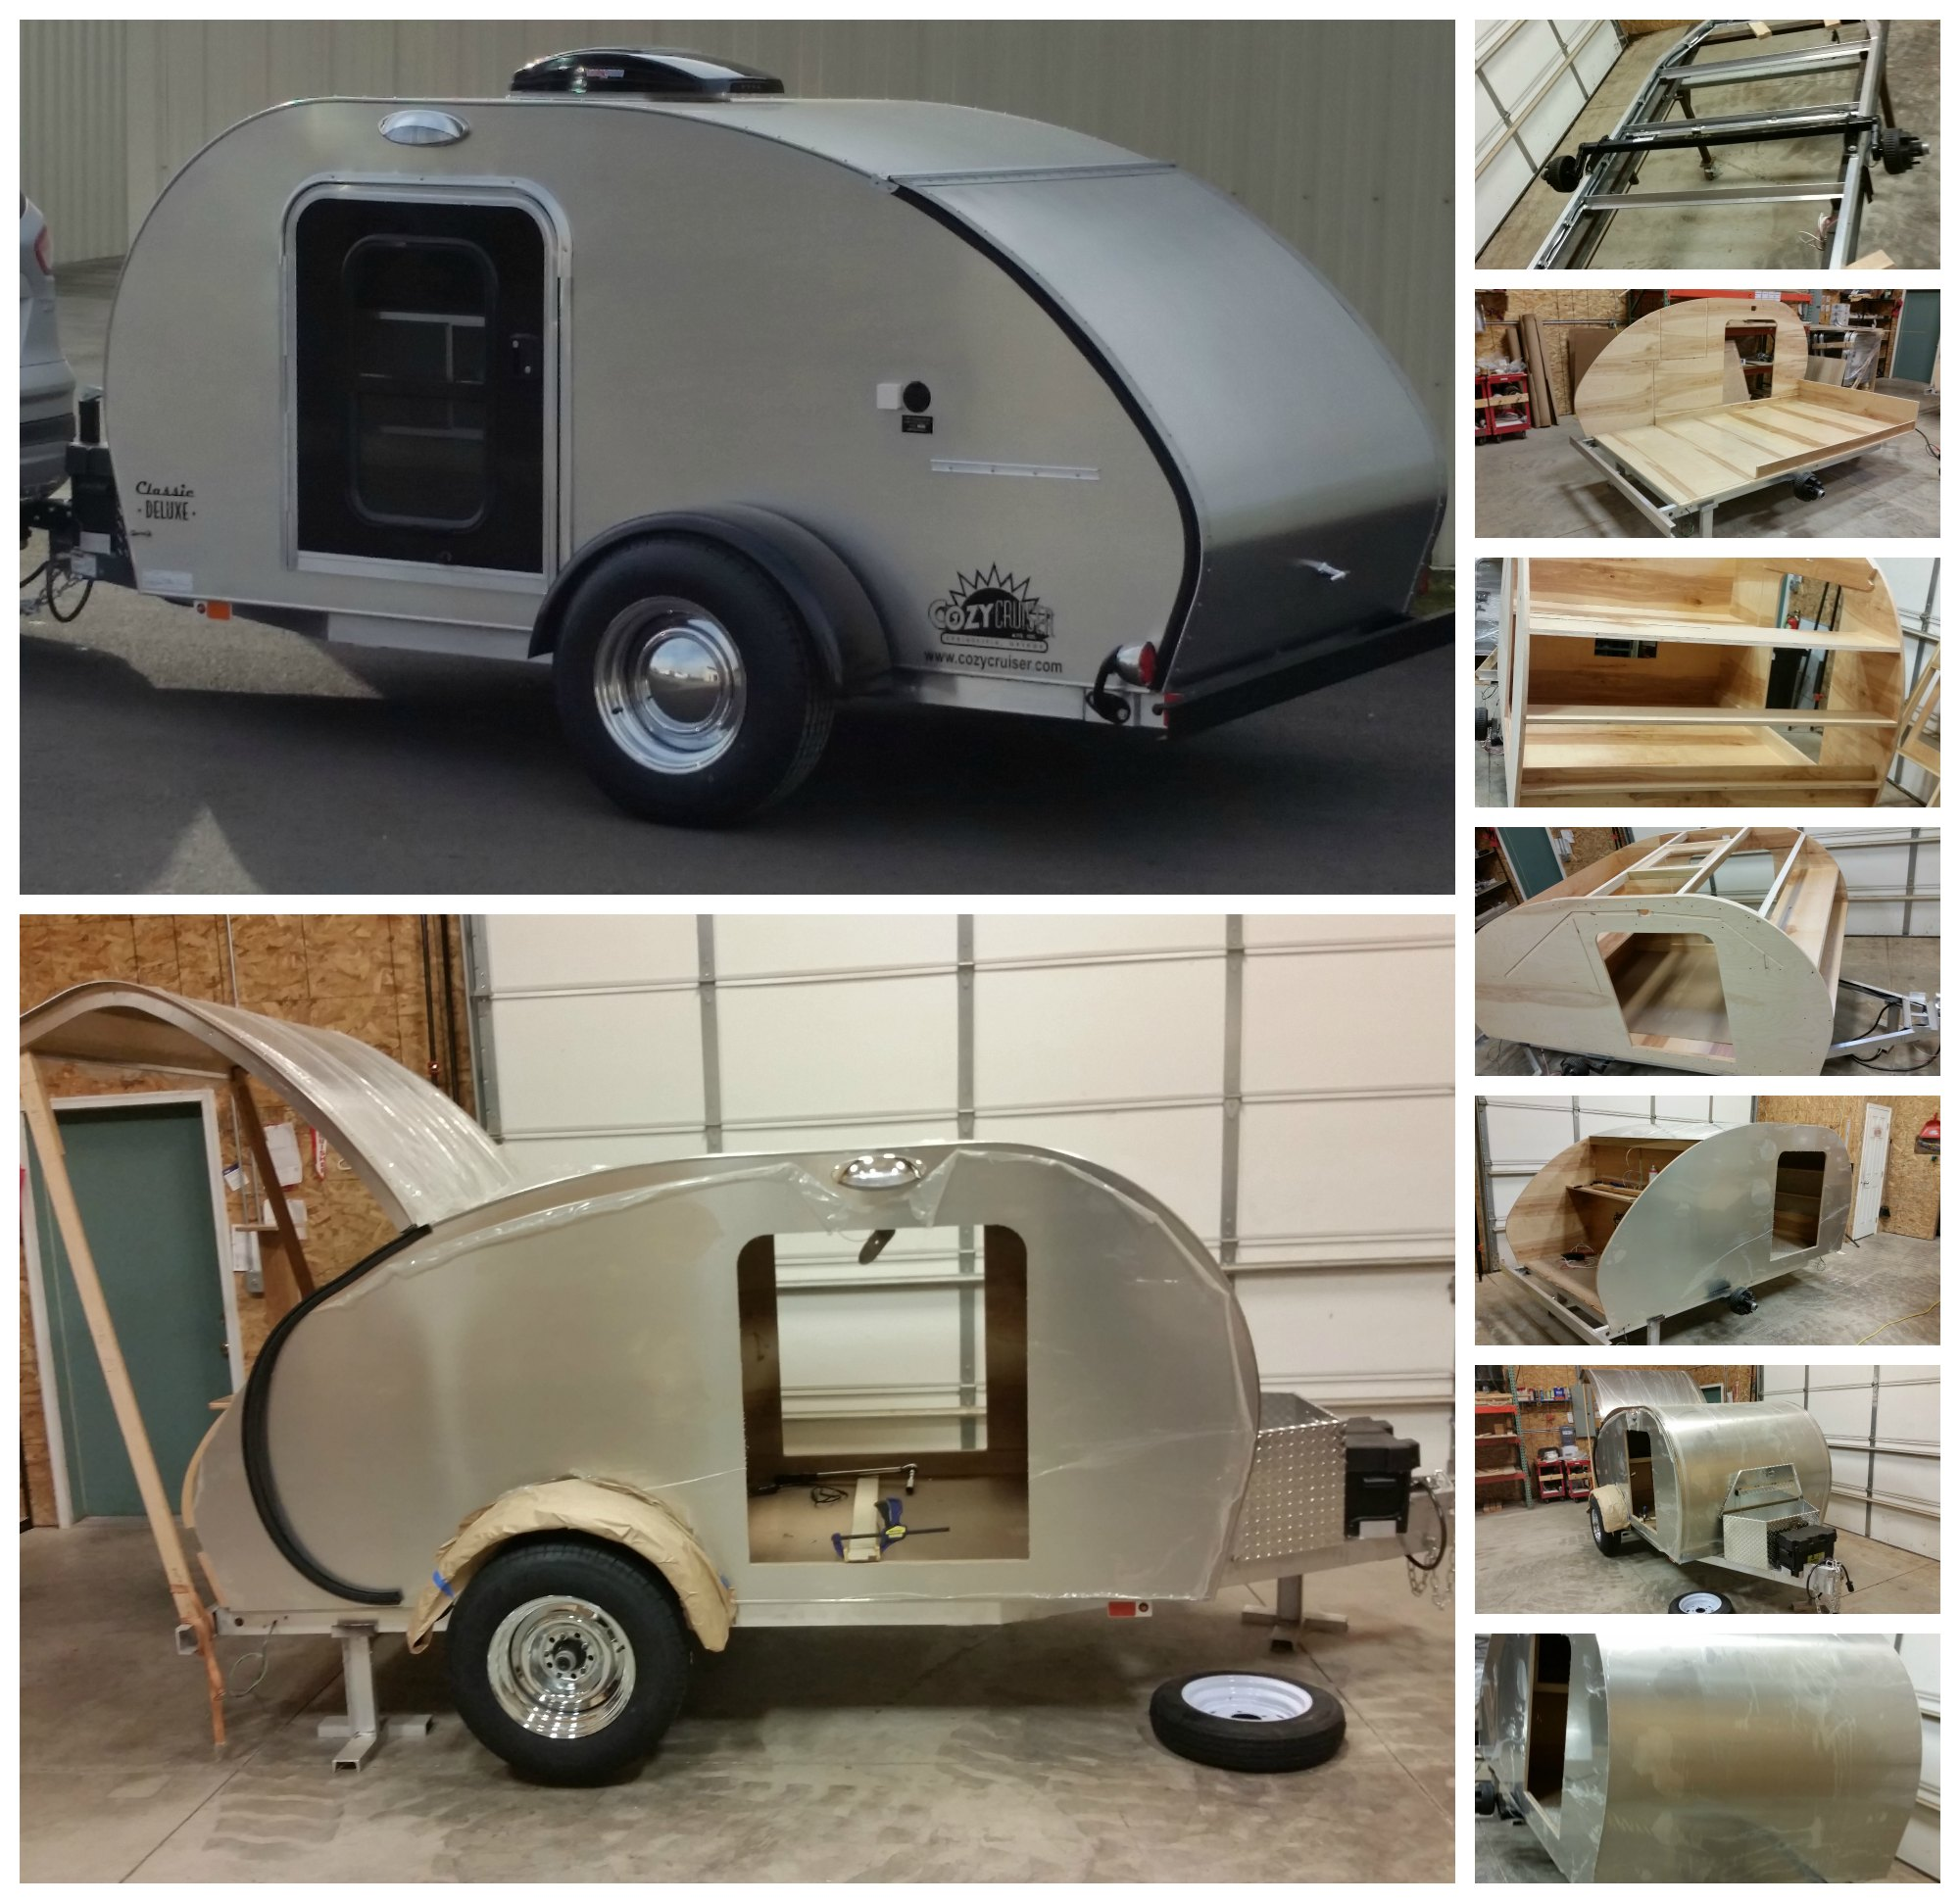 In the build Cozy Campers